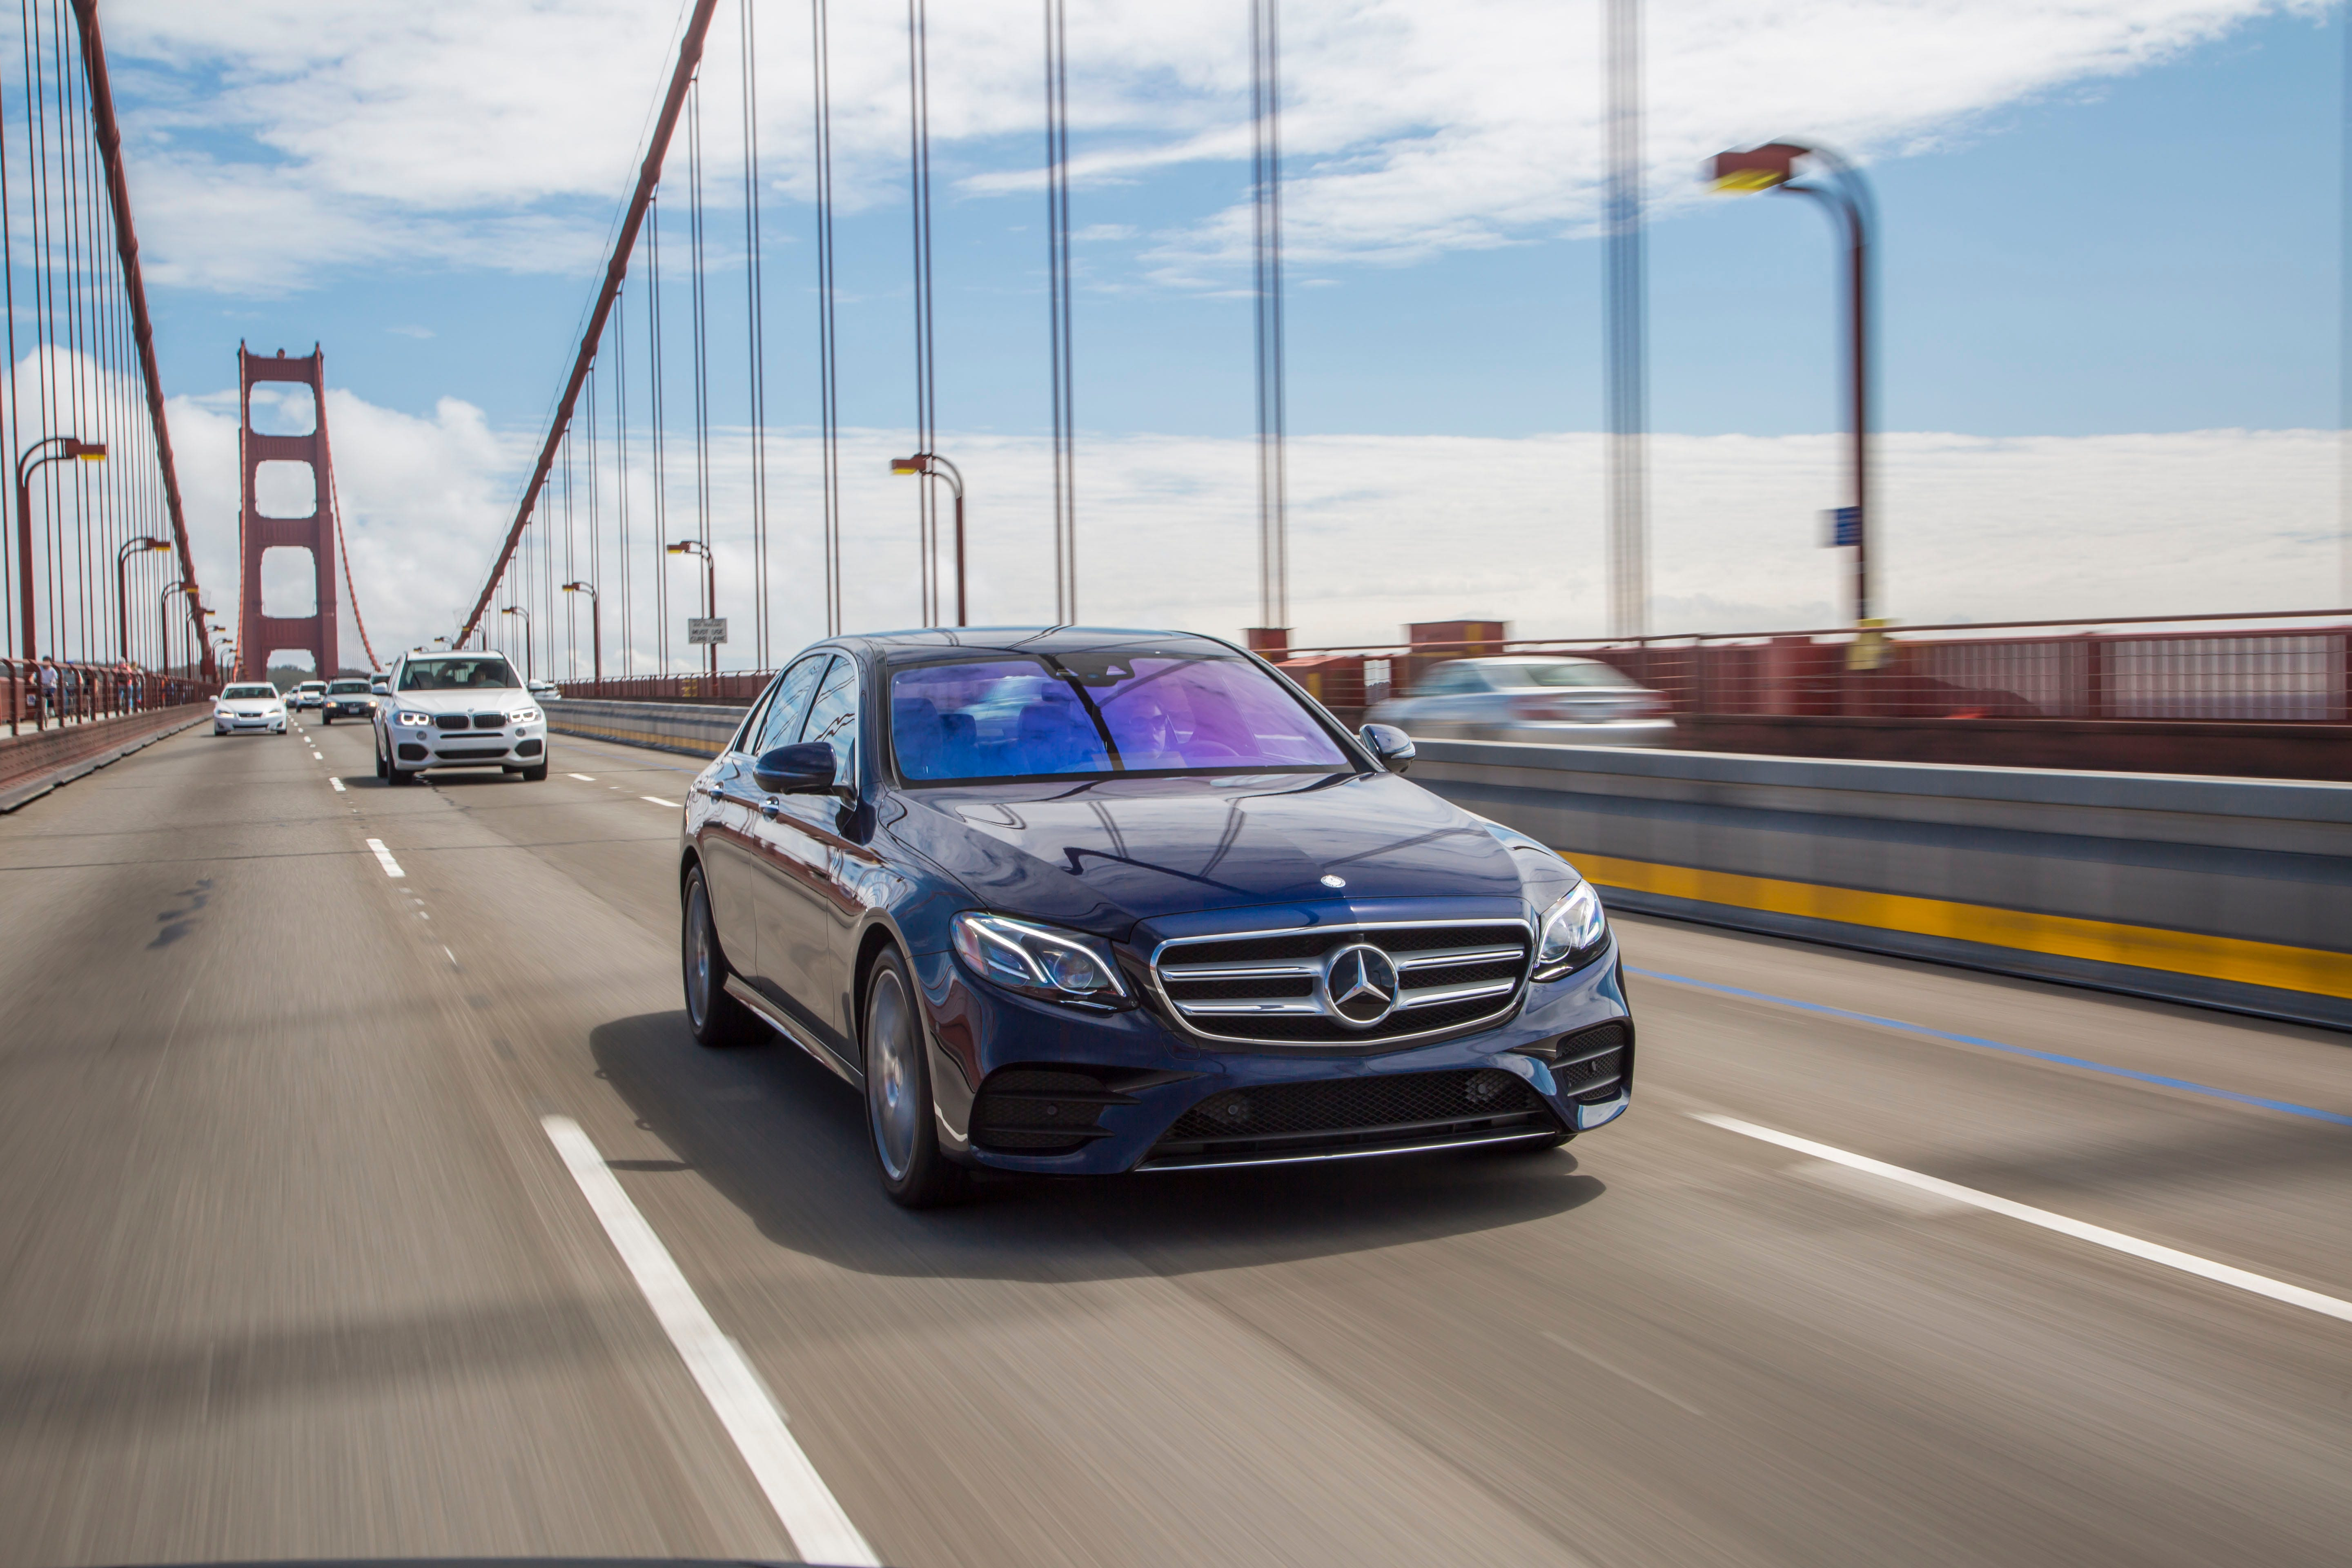 Mercedes-Benz E-Class: System self-test